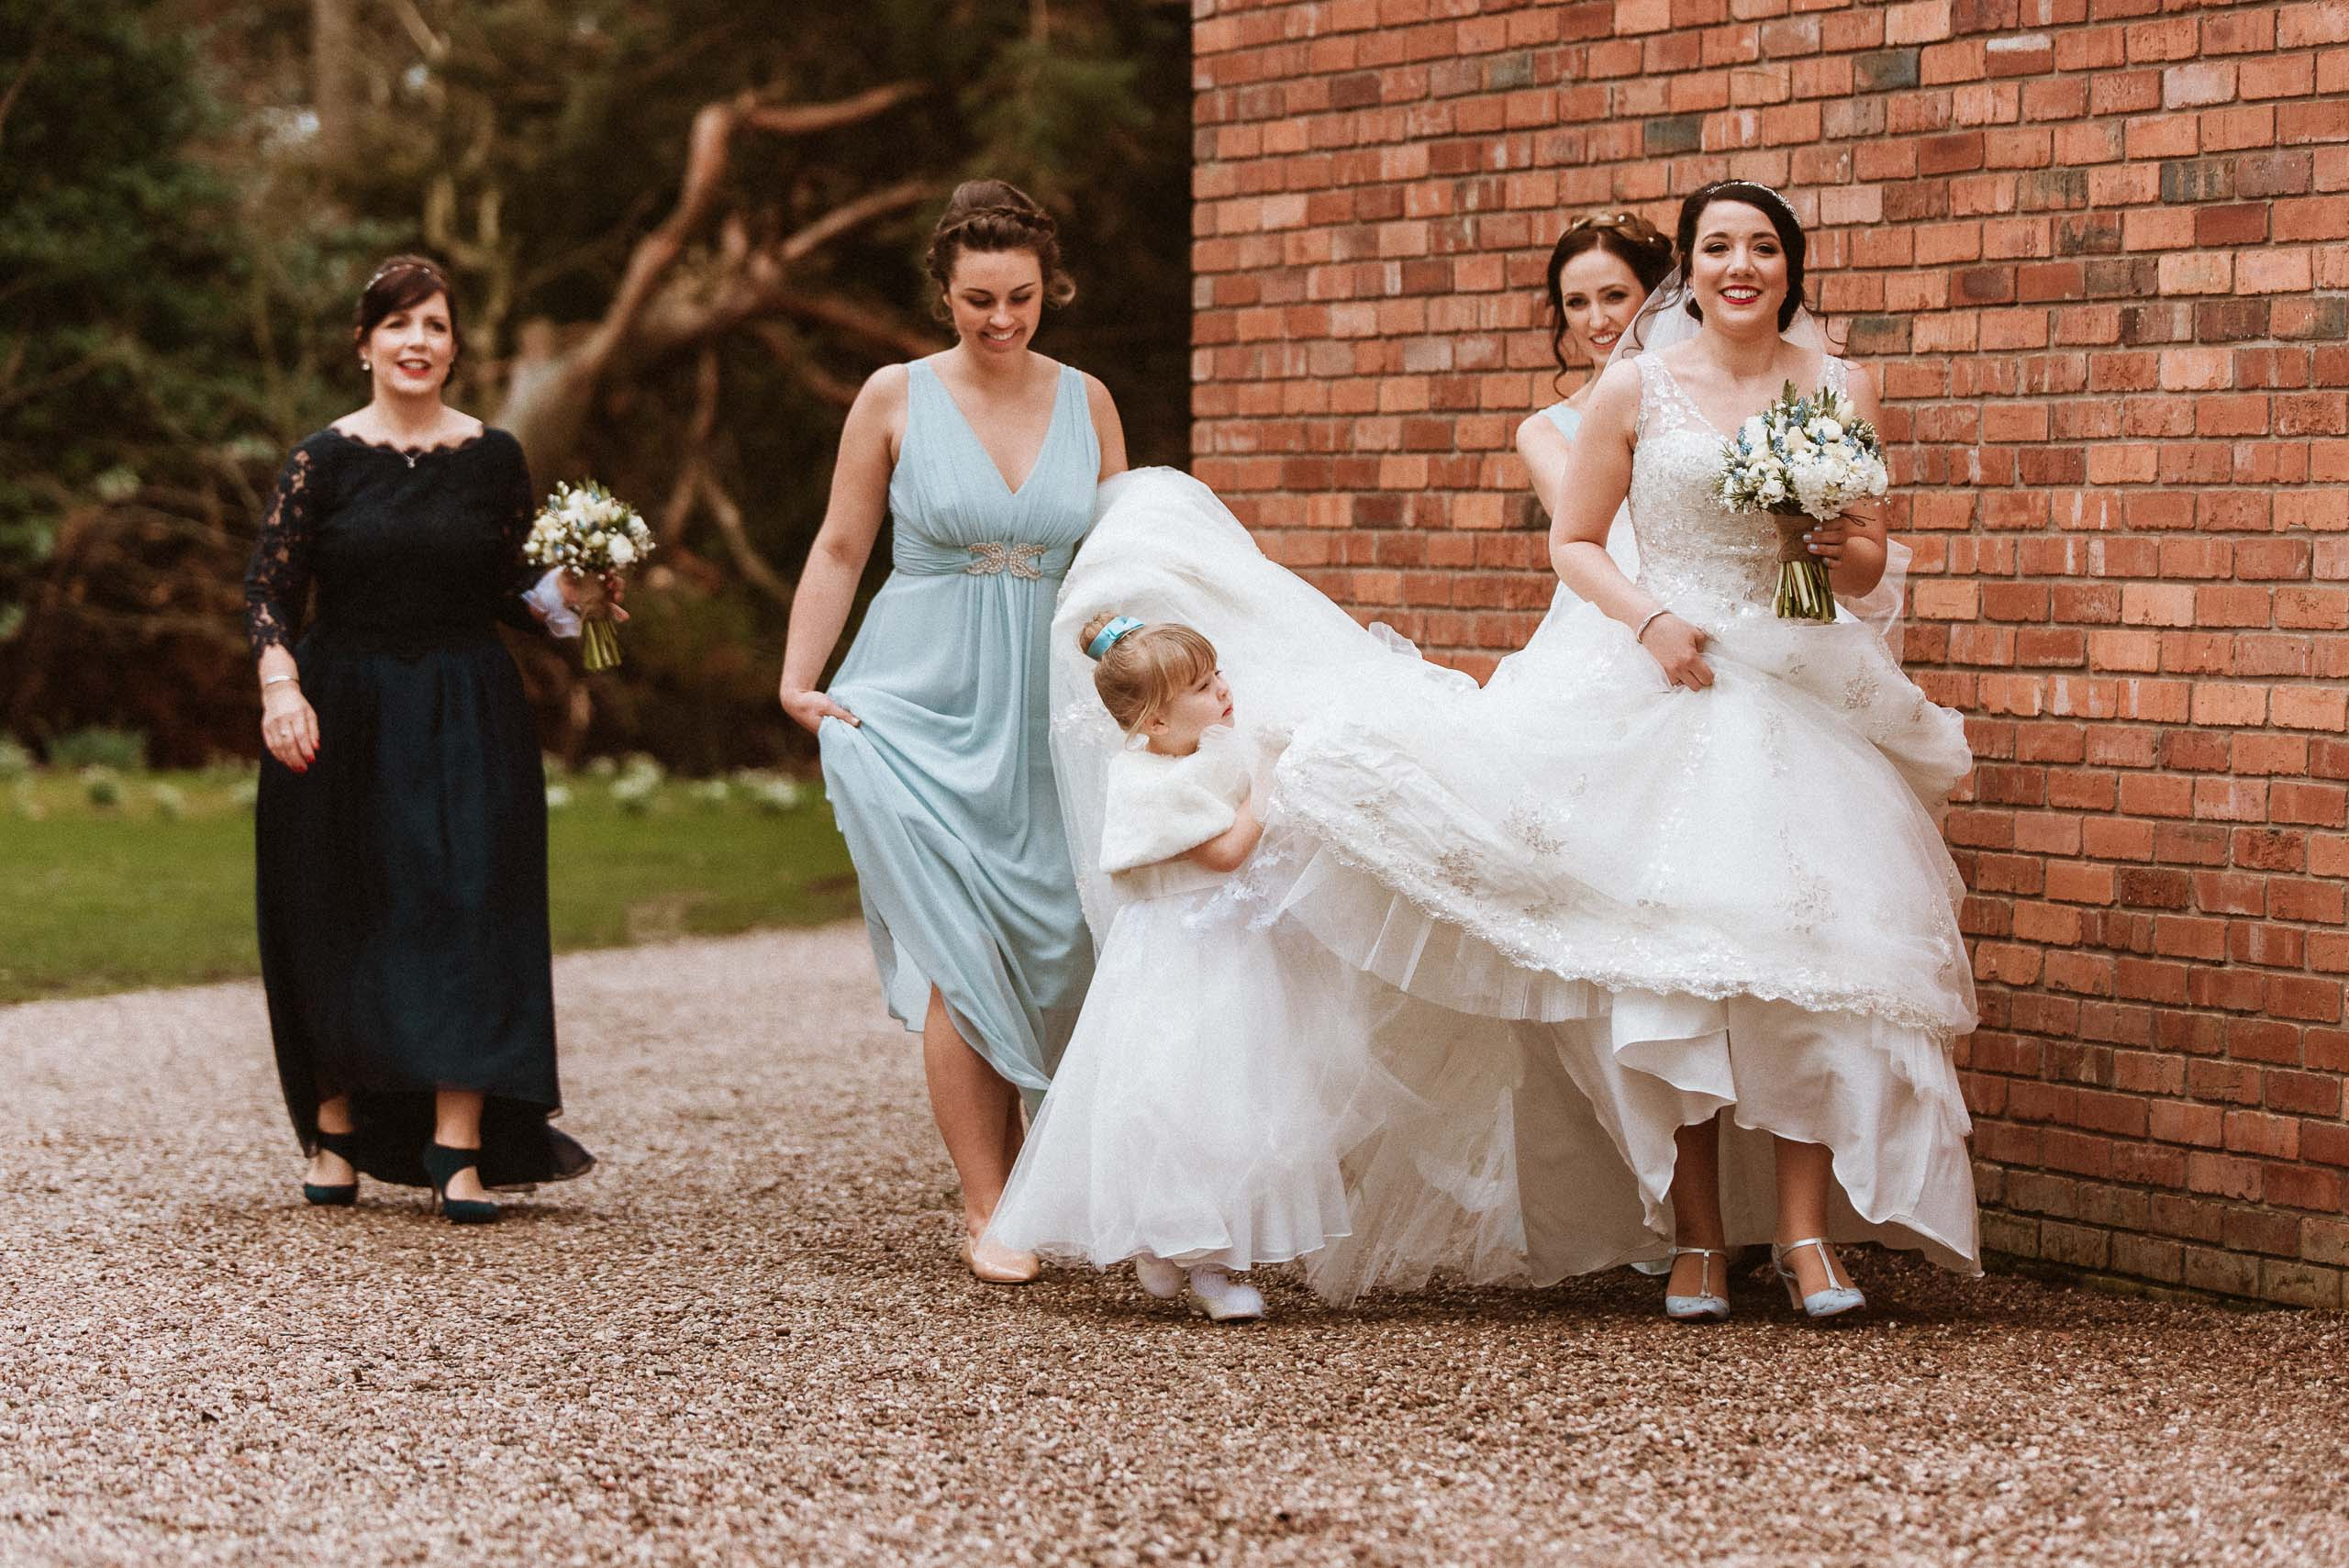 flower girl helps bride with dress